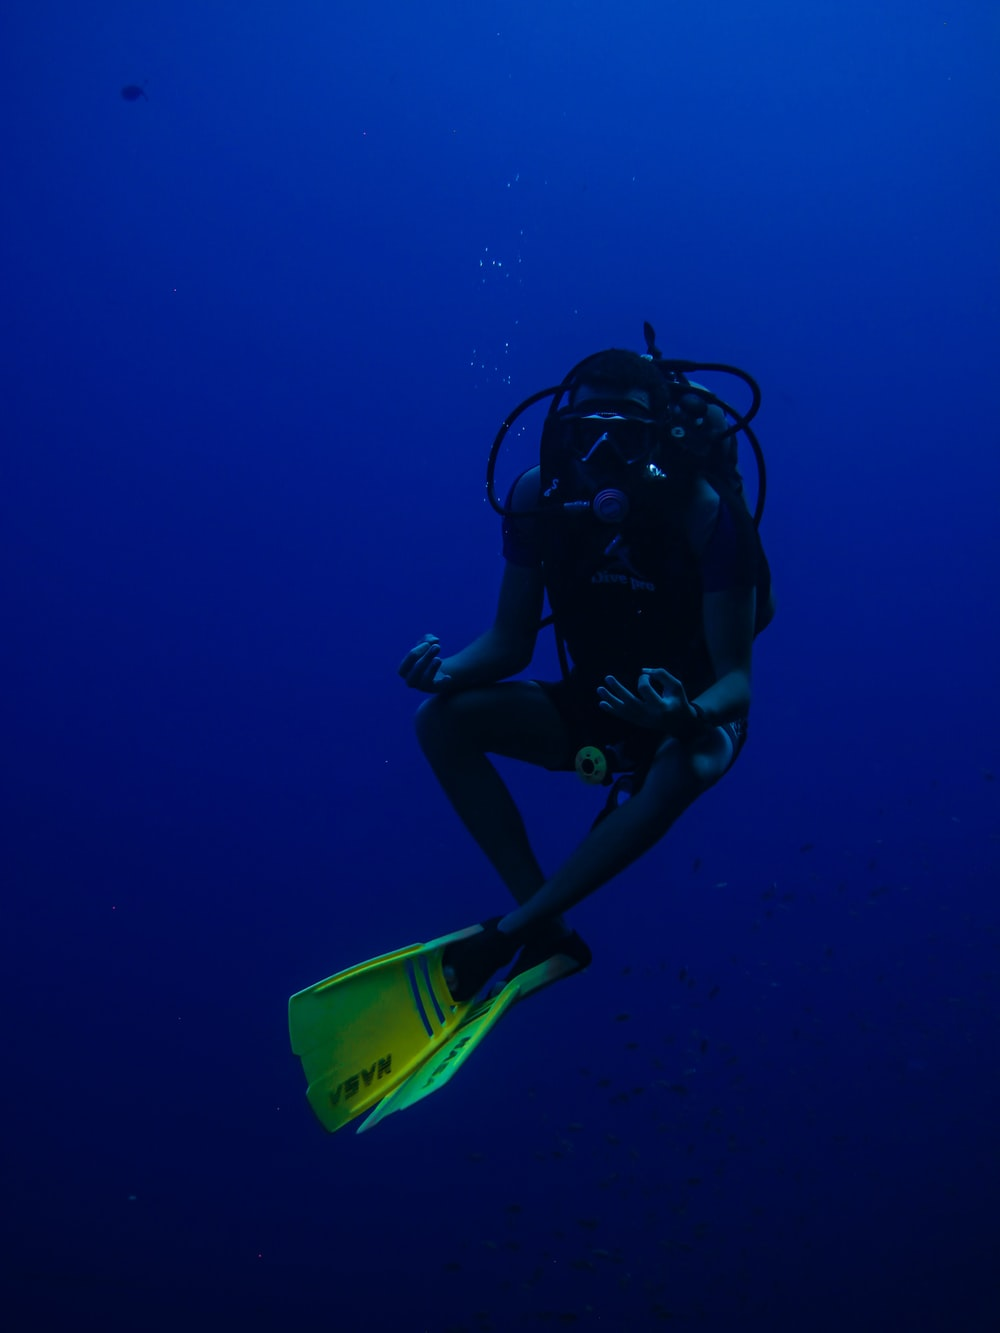 person in black and green wet suit under water